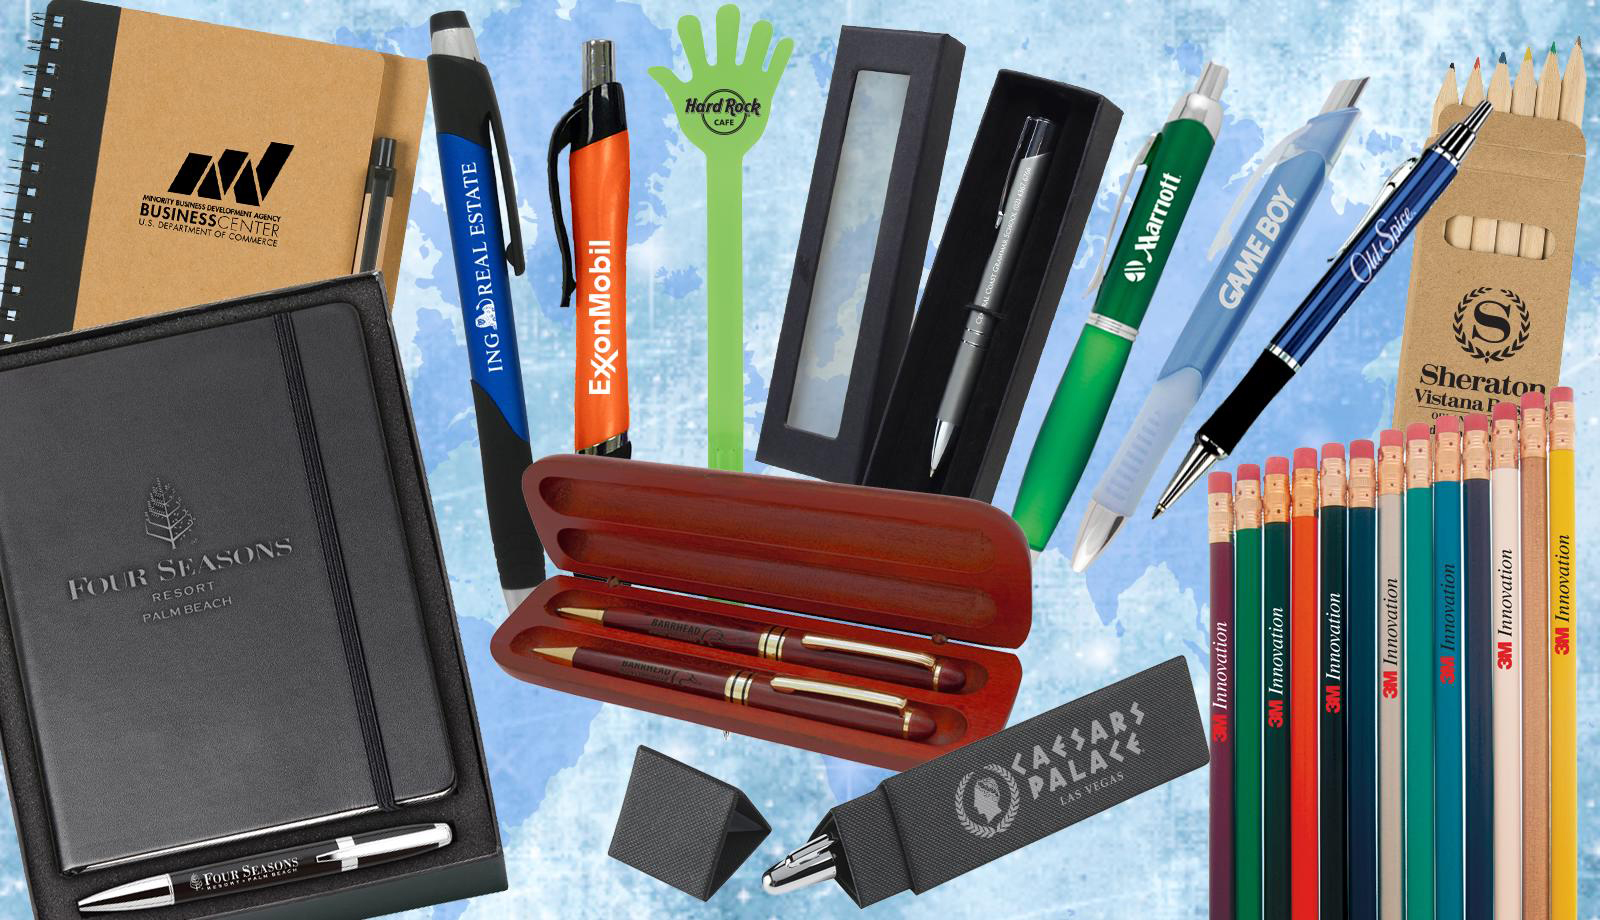 Marketing Pens Books Flash Drives Promotions